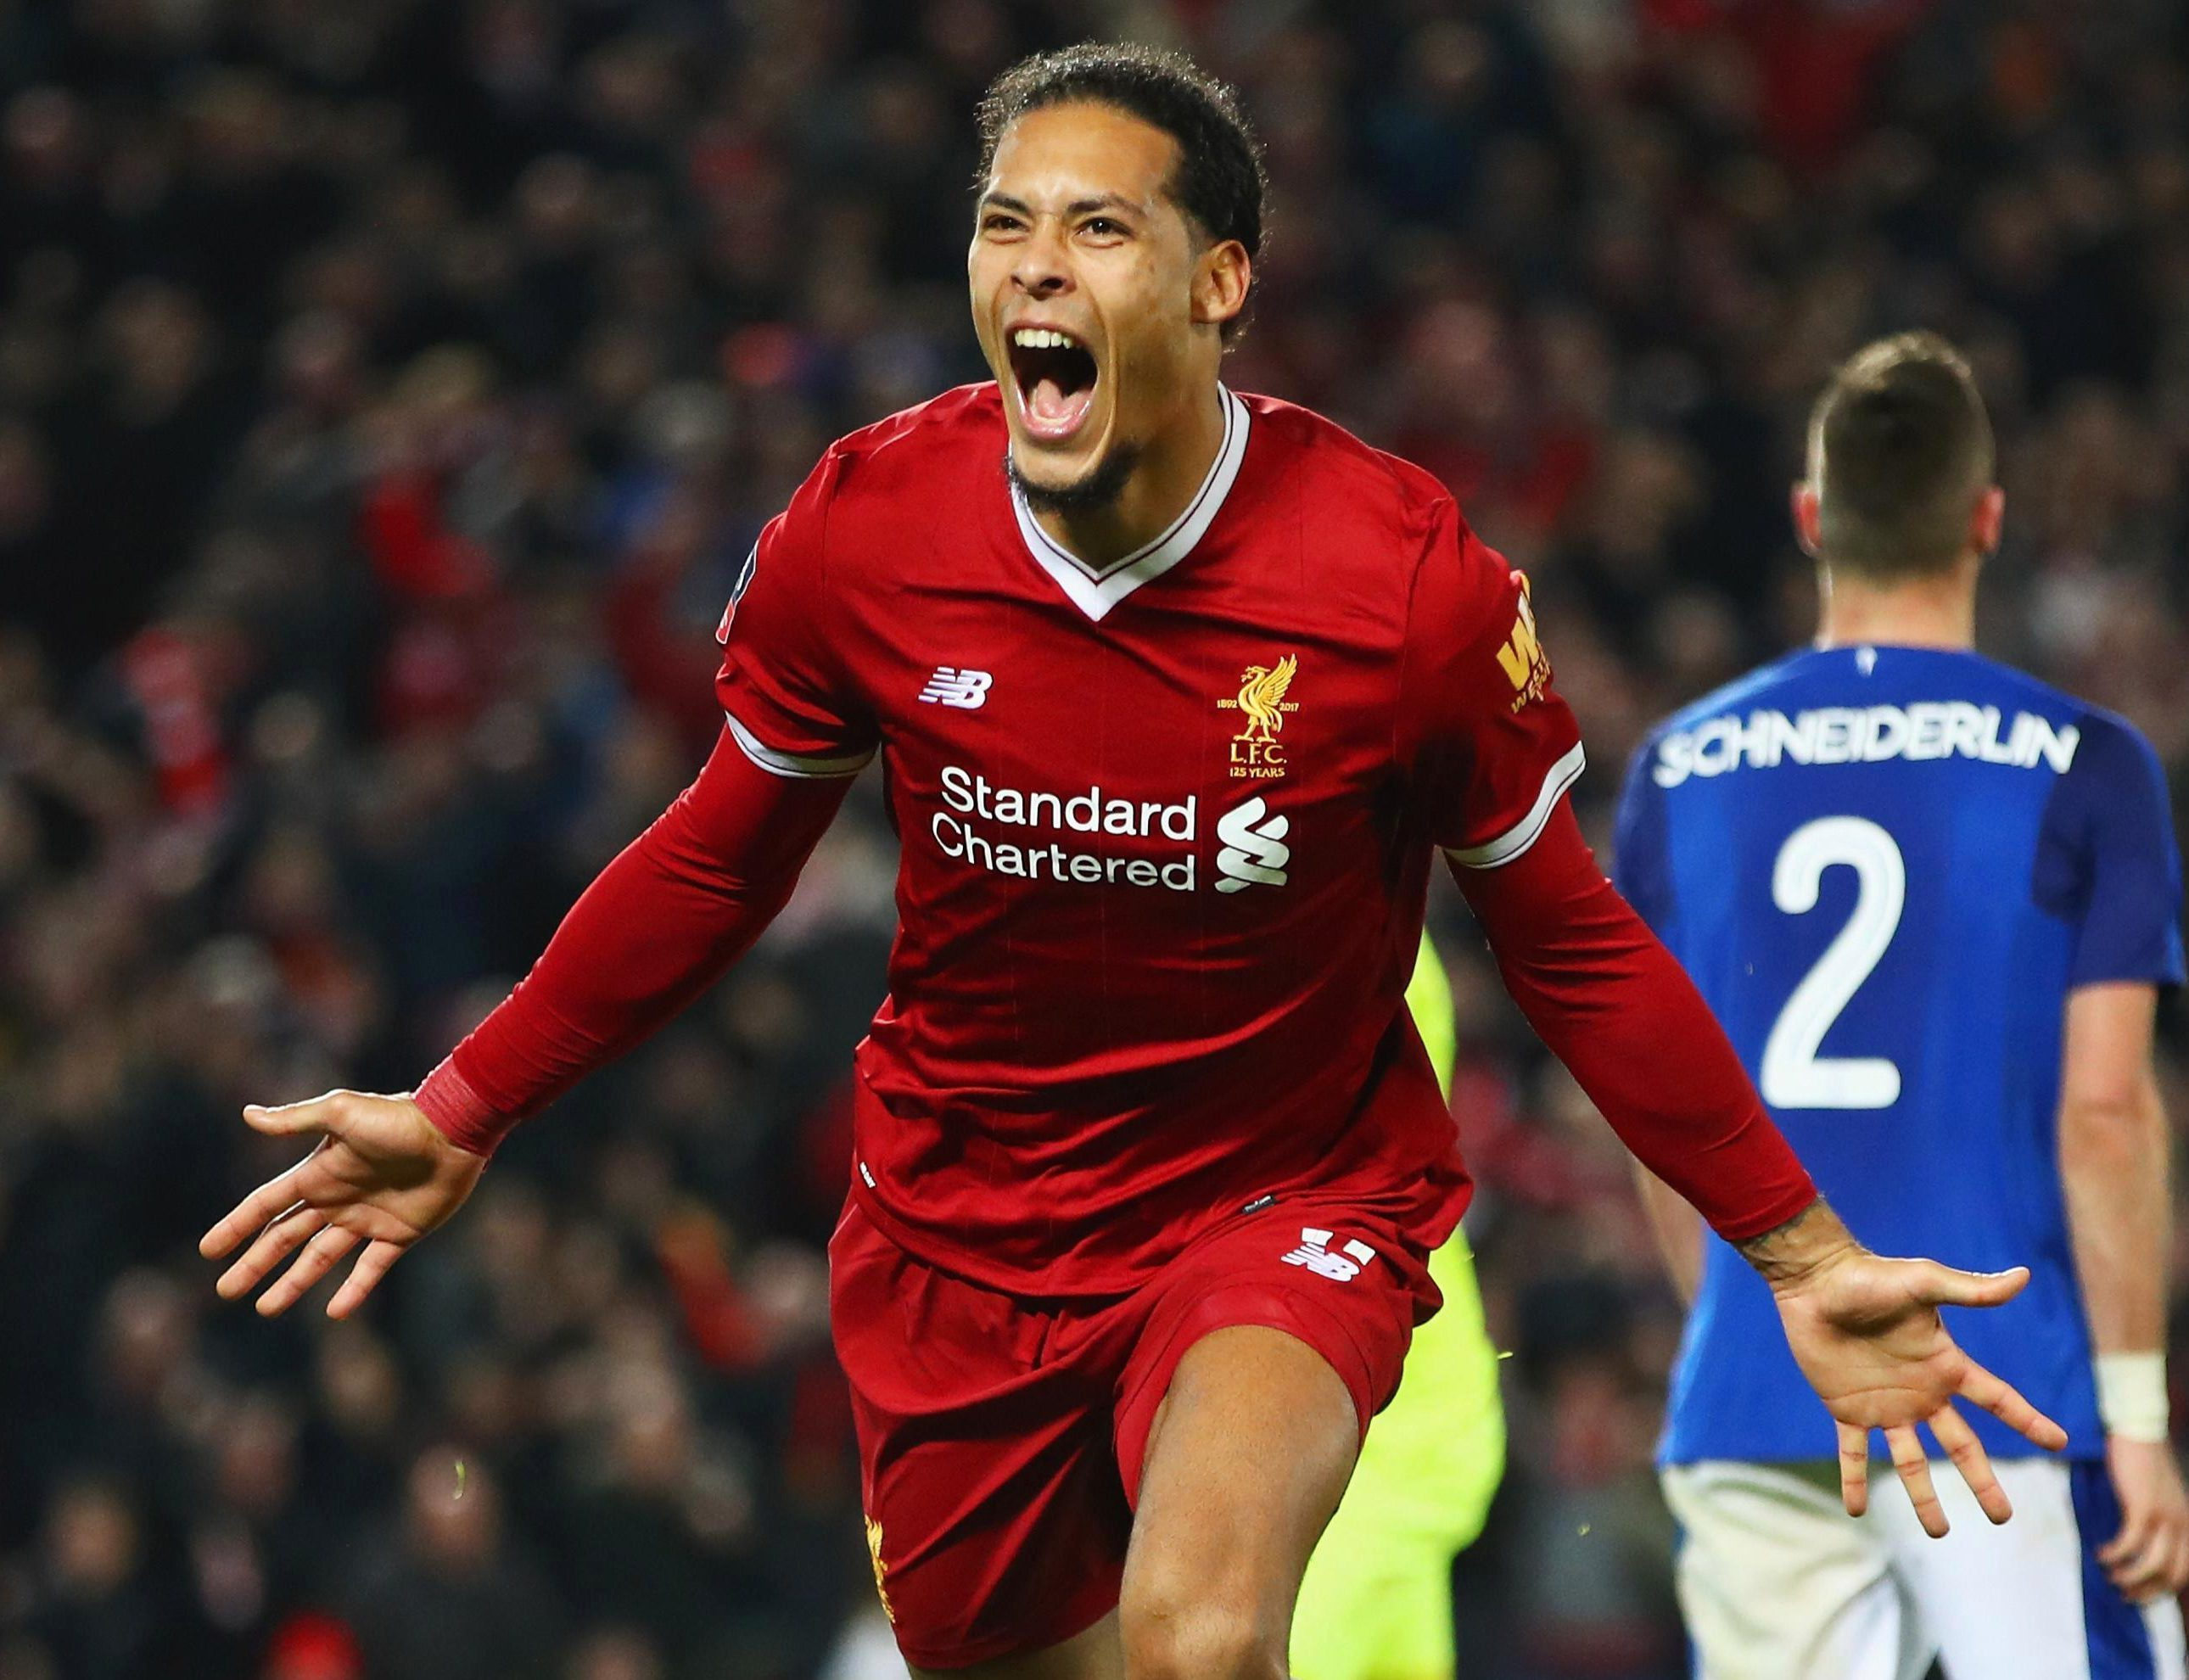 Liverpool vs Manchester City: Virgil van Dijk set to miss massive clash with thigh injury